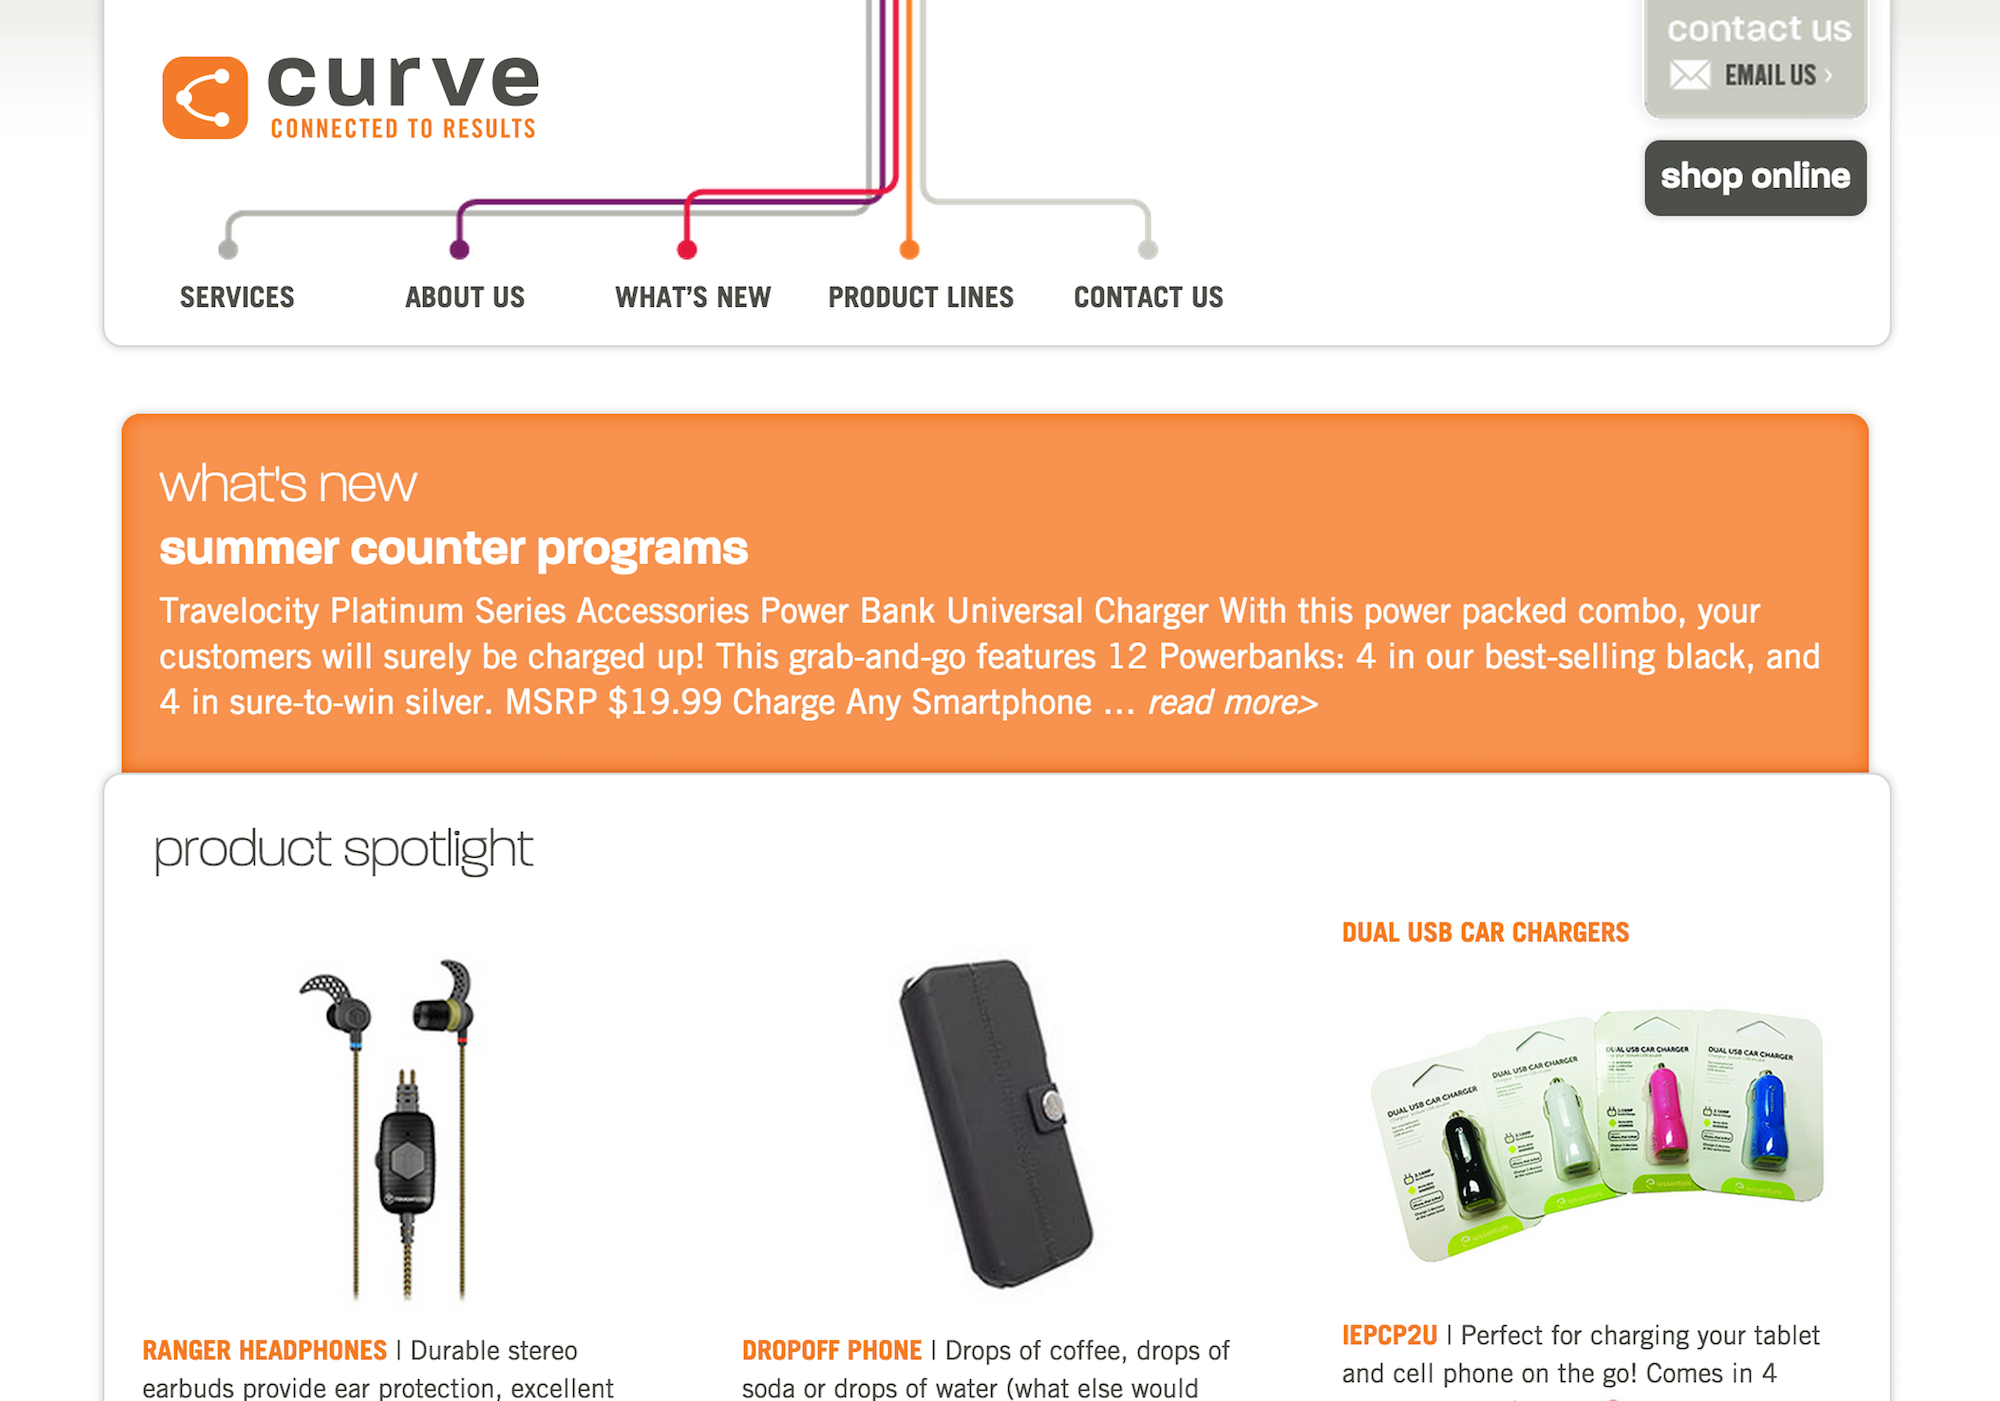 Curve distribution services website